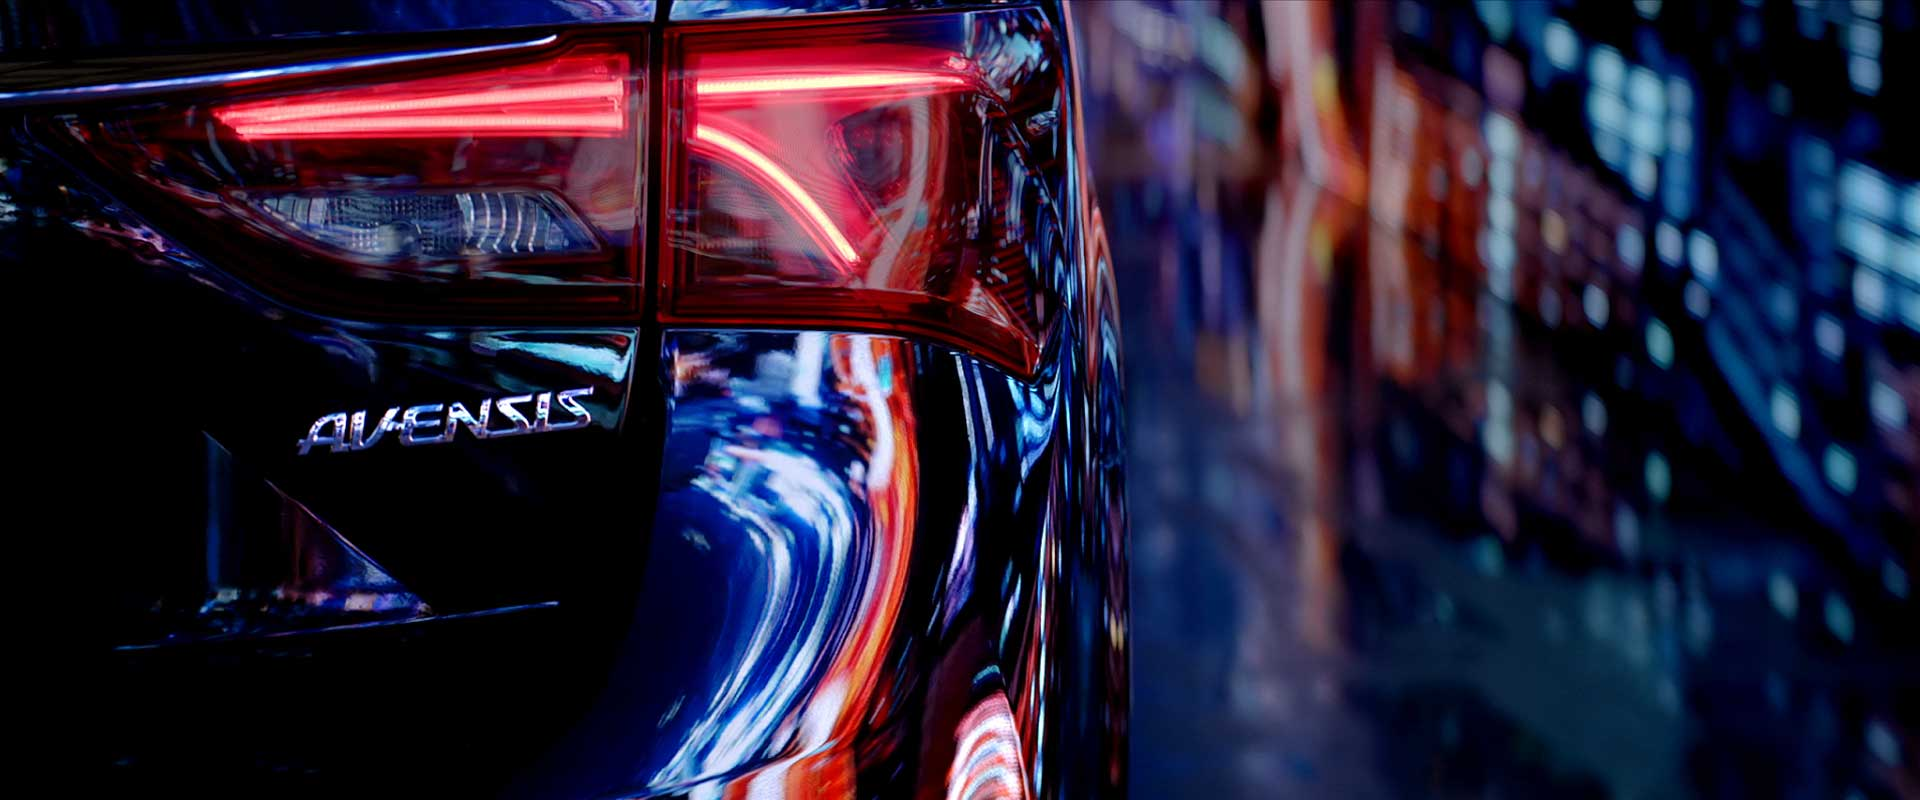 Backdetail car. Still from Toyota Avensis - Commercial